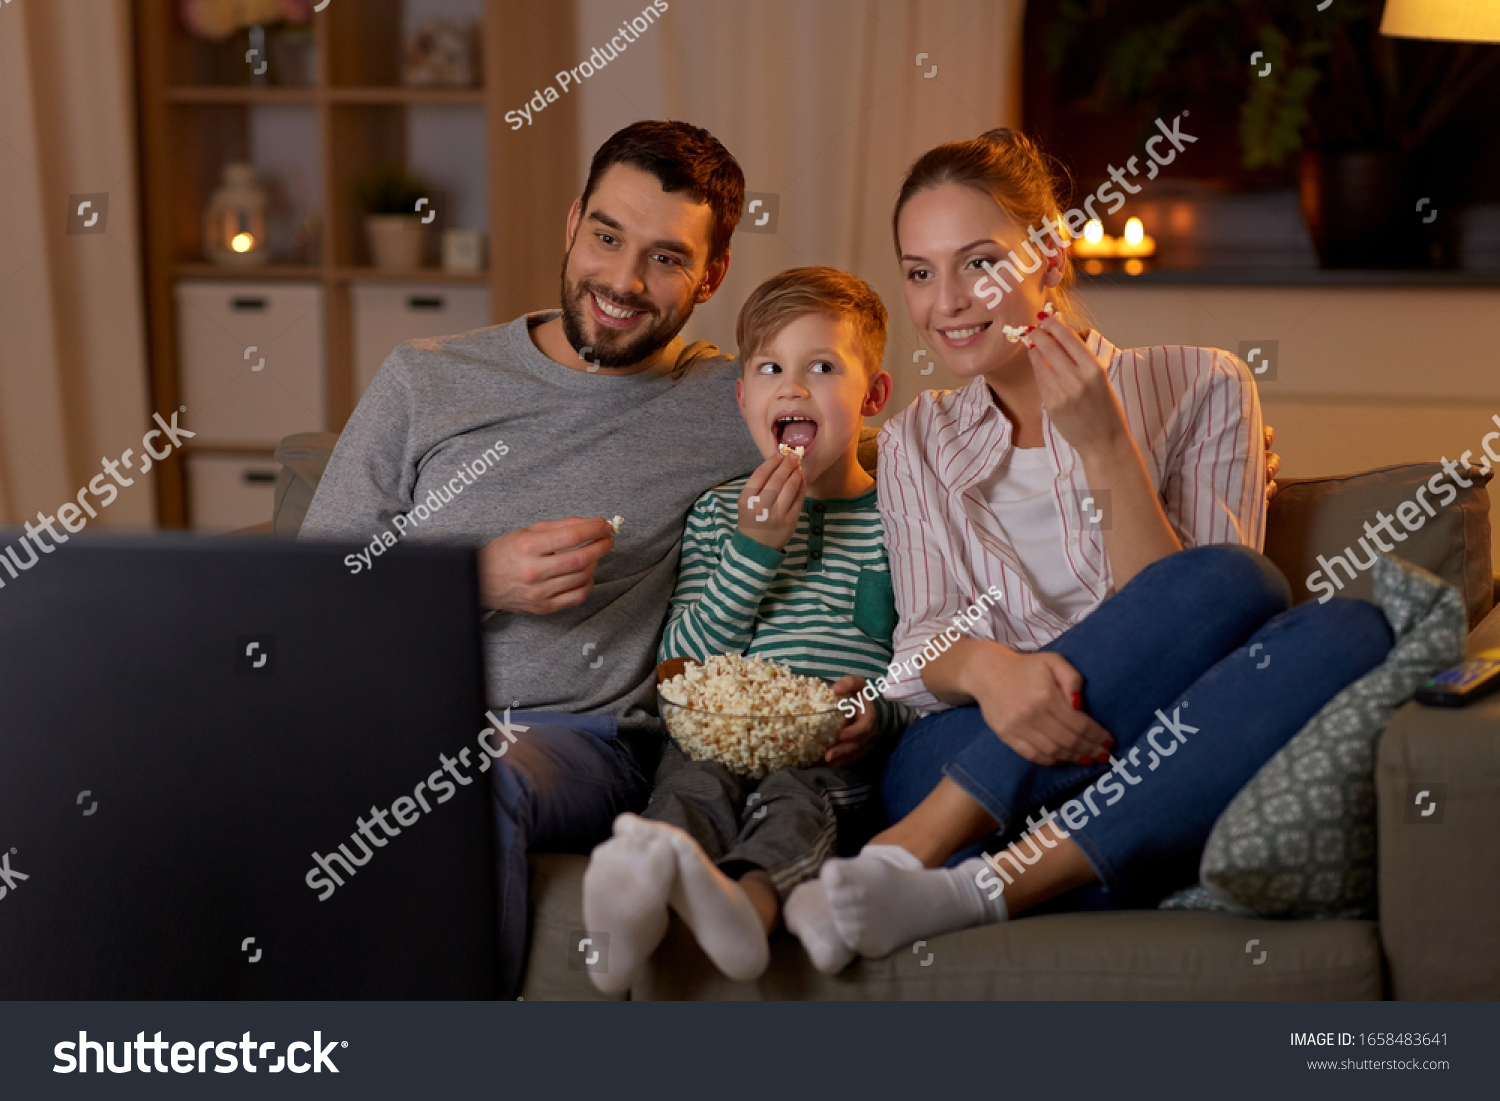 family, leisure and people concept - happy smiling father, mother and little son eating popcorn and watching tv at home in evening #1658483641